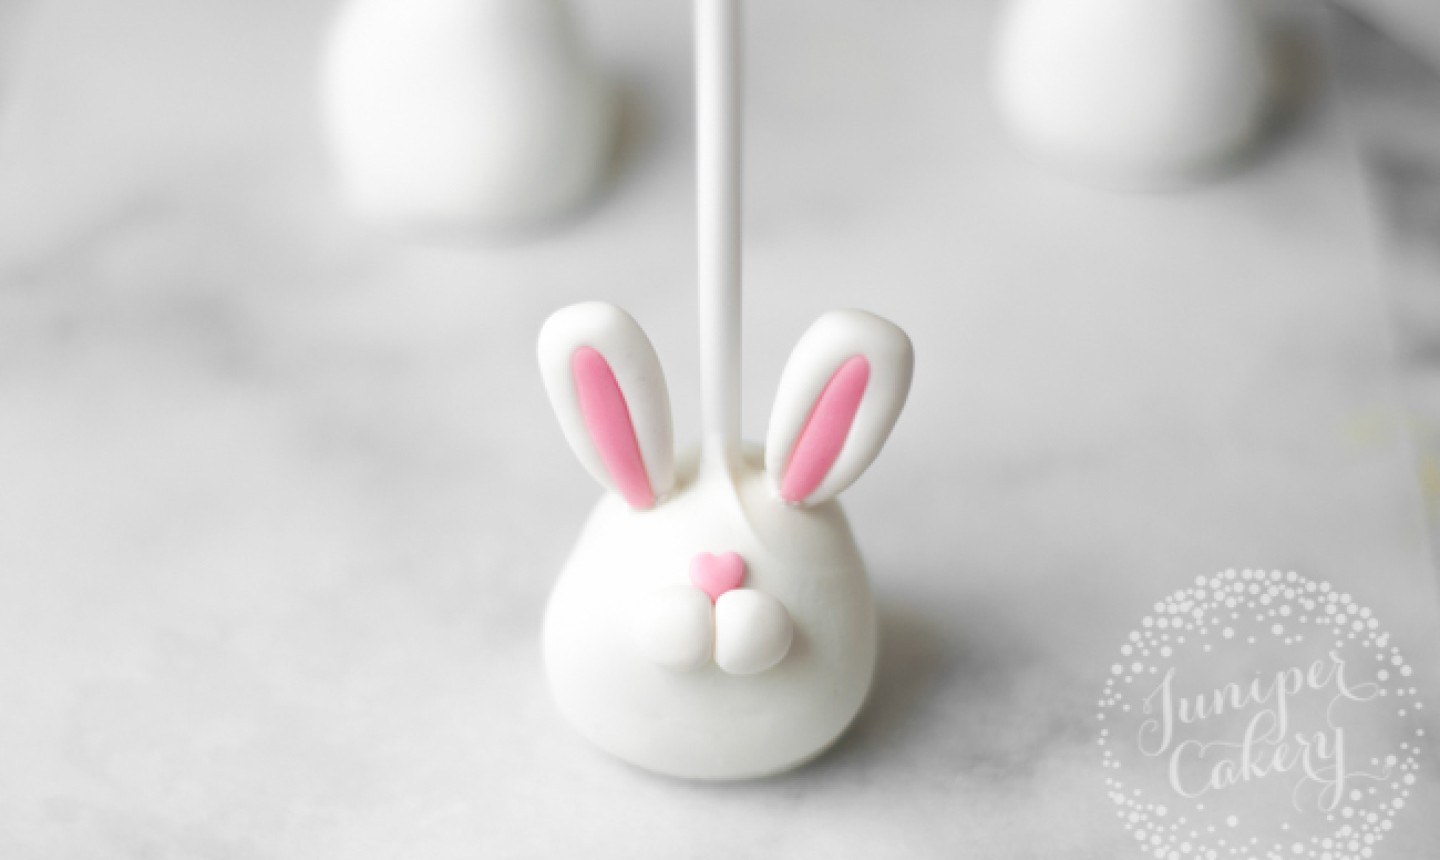 bunny cake pop with heart nose